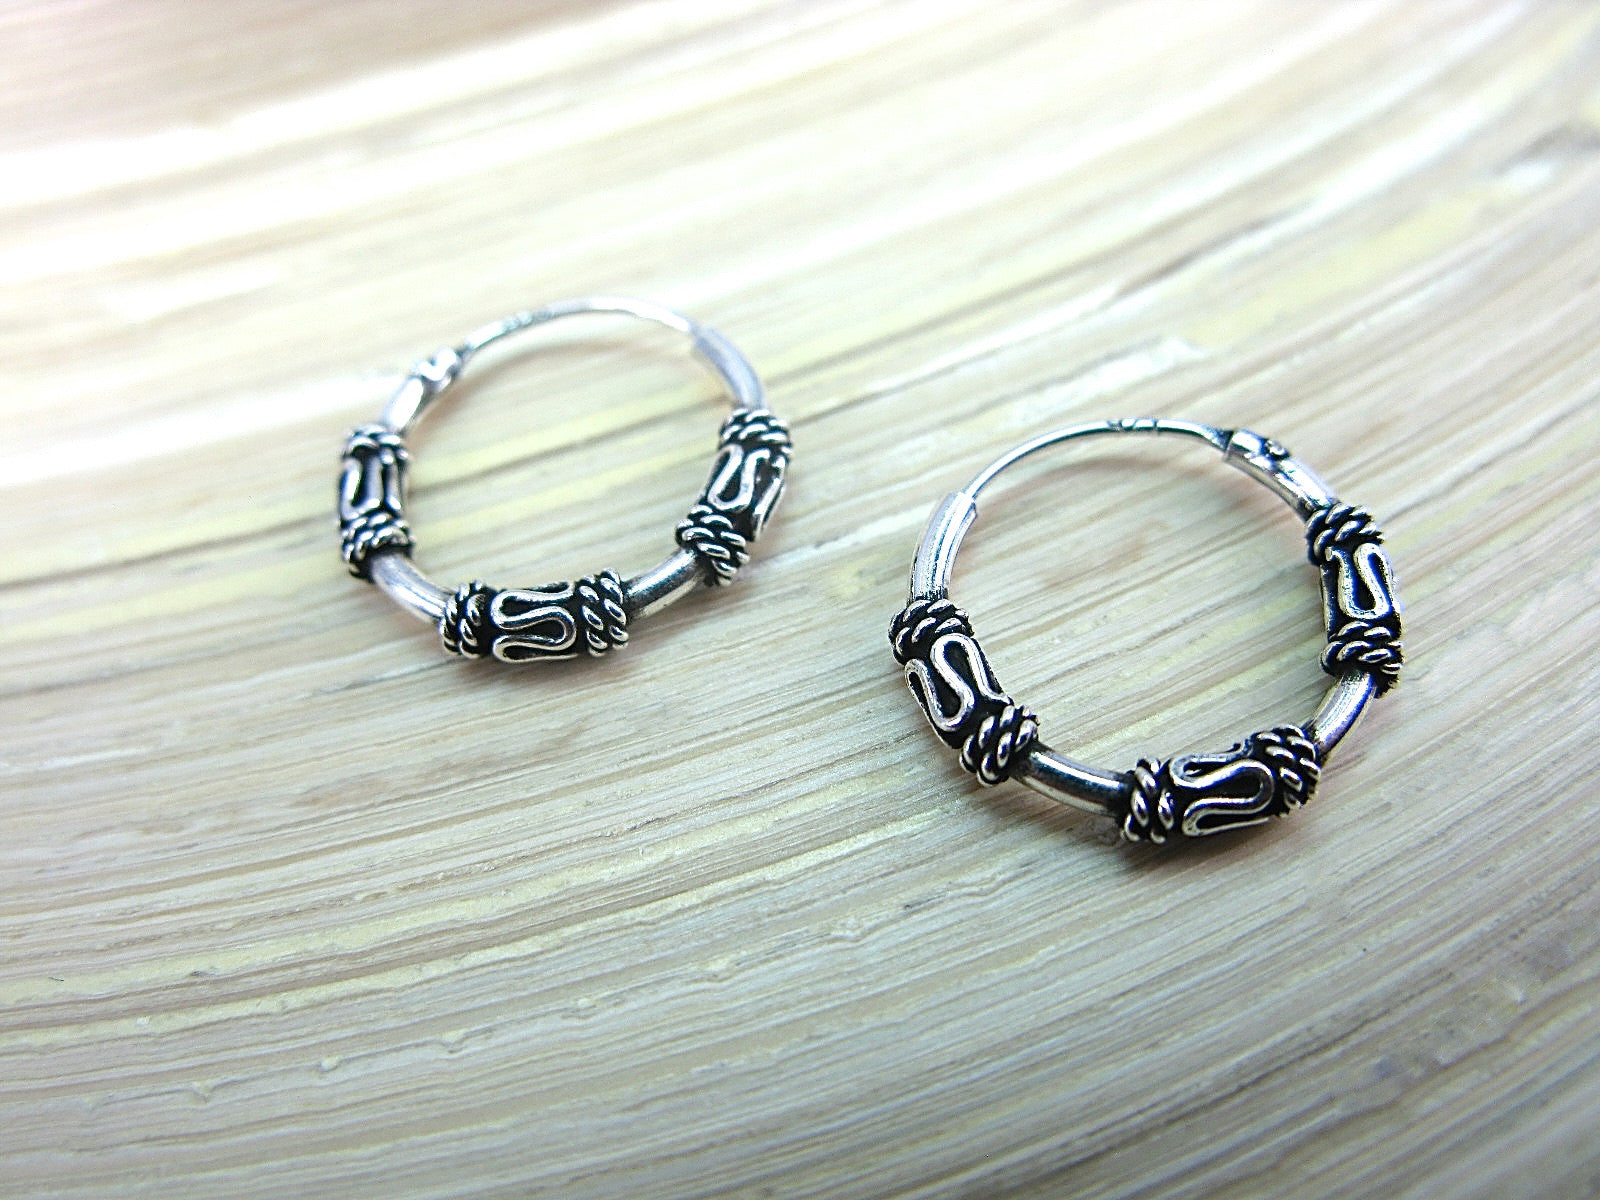 Balinese 14mm Round Oxidized 925 Sterlings Silve Hoop Earrings Earrings - Faith Owl